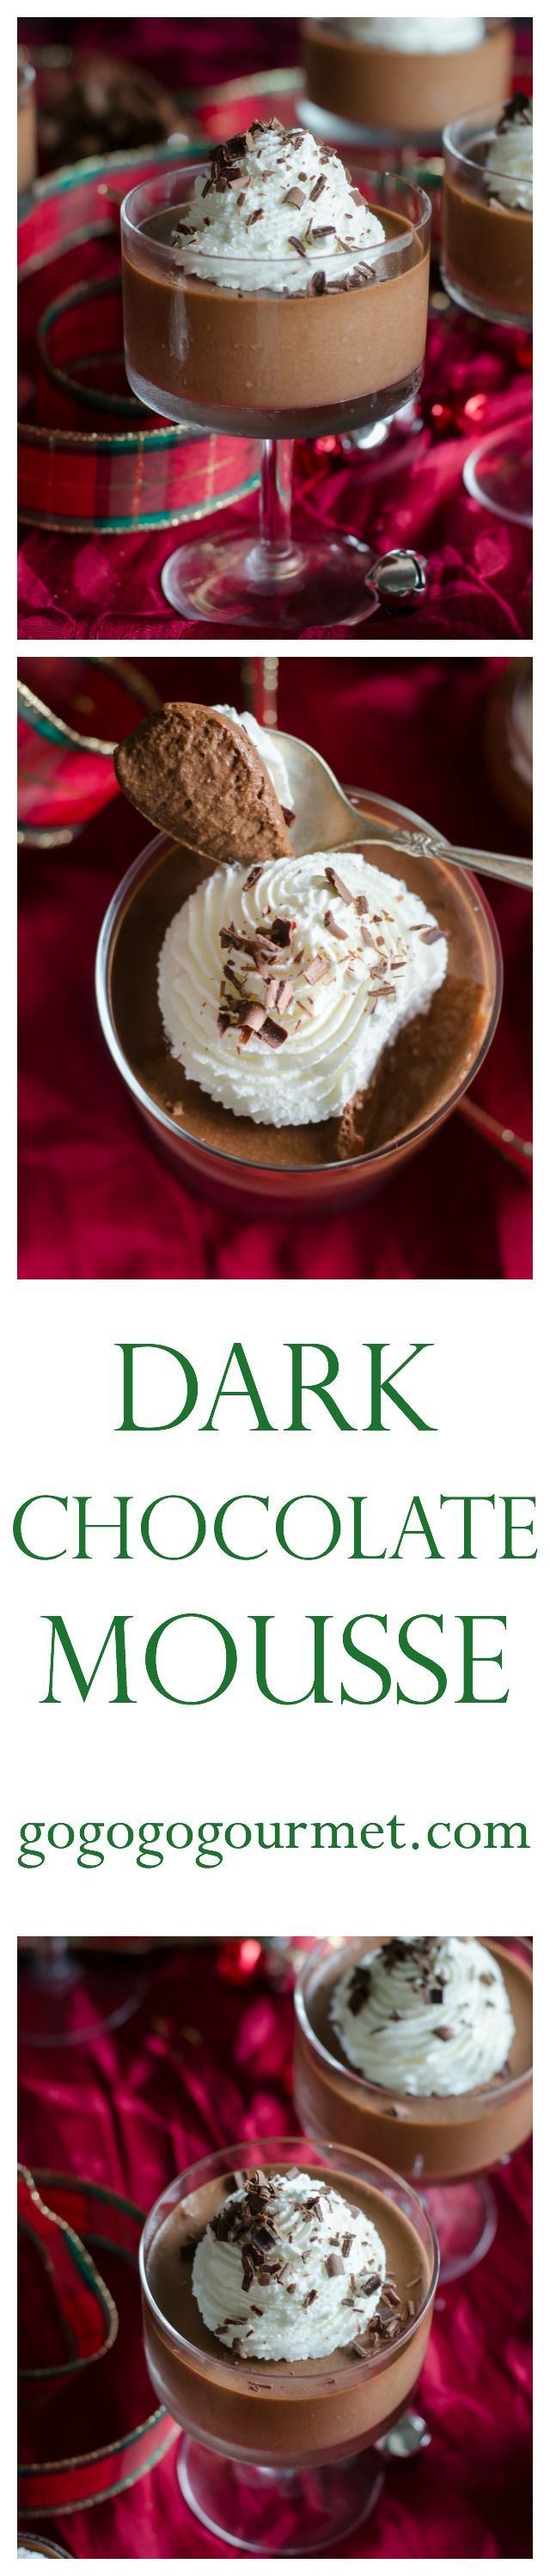 Smooth, velvety and easier than you'd expect, this dark chocolate mousse is a sure showstopper at your holiday parties. Dark Chocolate Mousse | Go Go Go Gourmet /gogogogourmet/